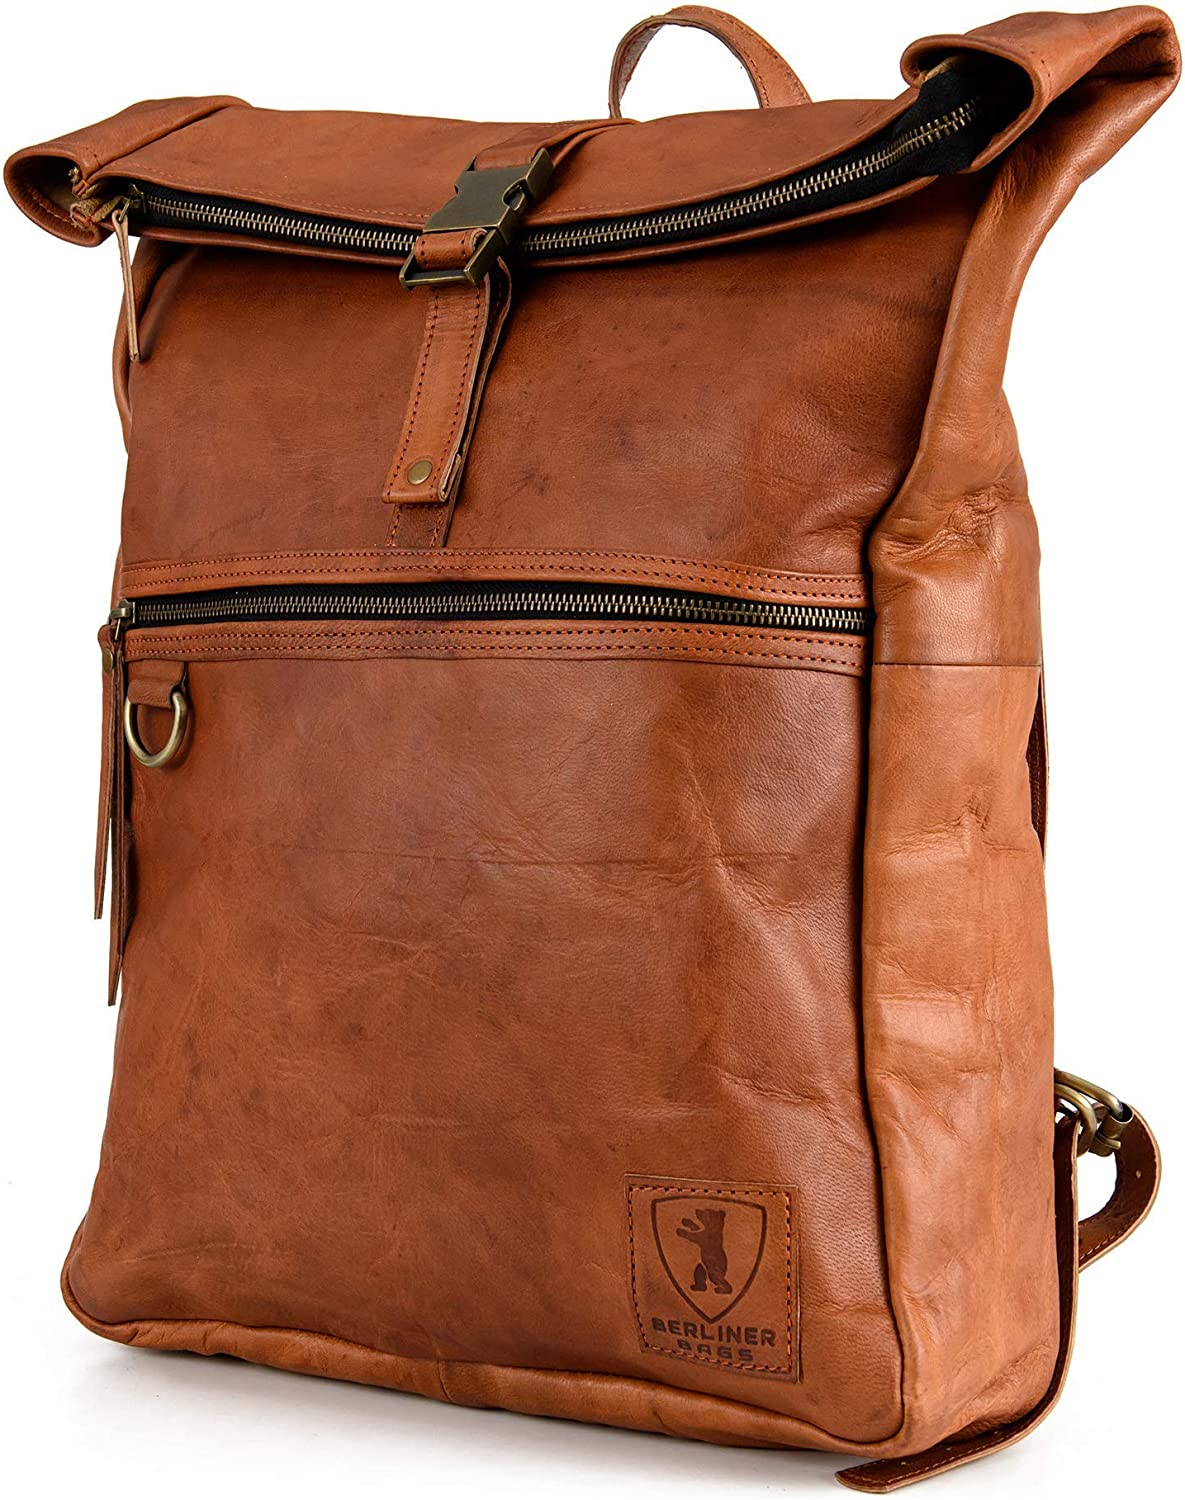 Berliner Bags Utrecht XL Leather Backpack Laptop Rucksack Men Women Retro Brown